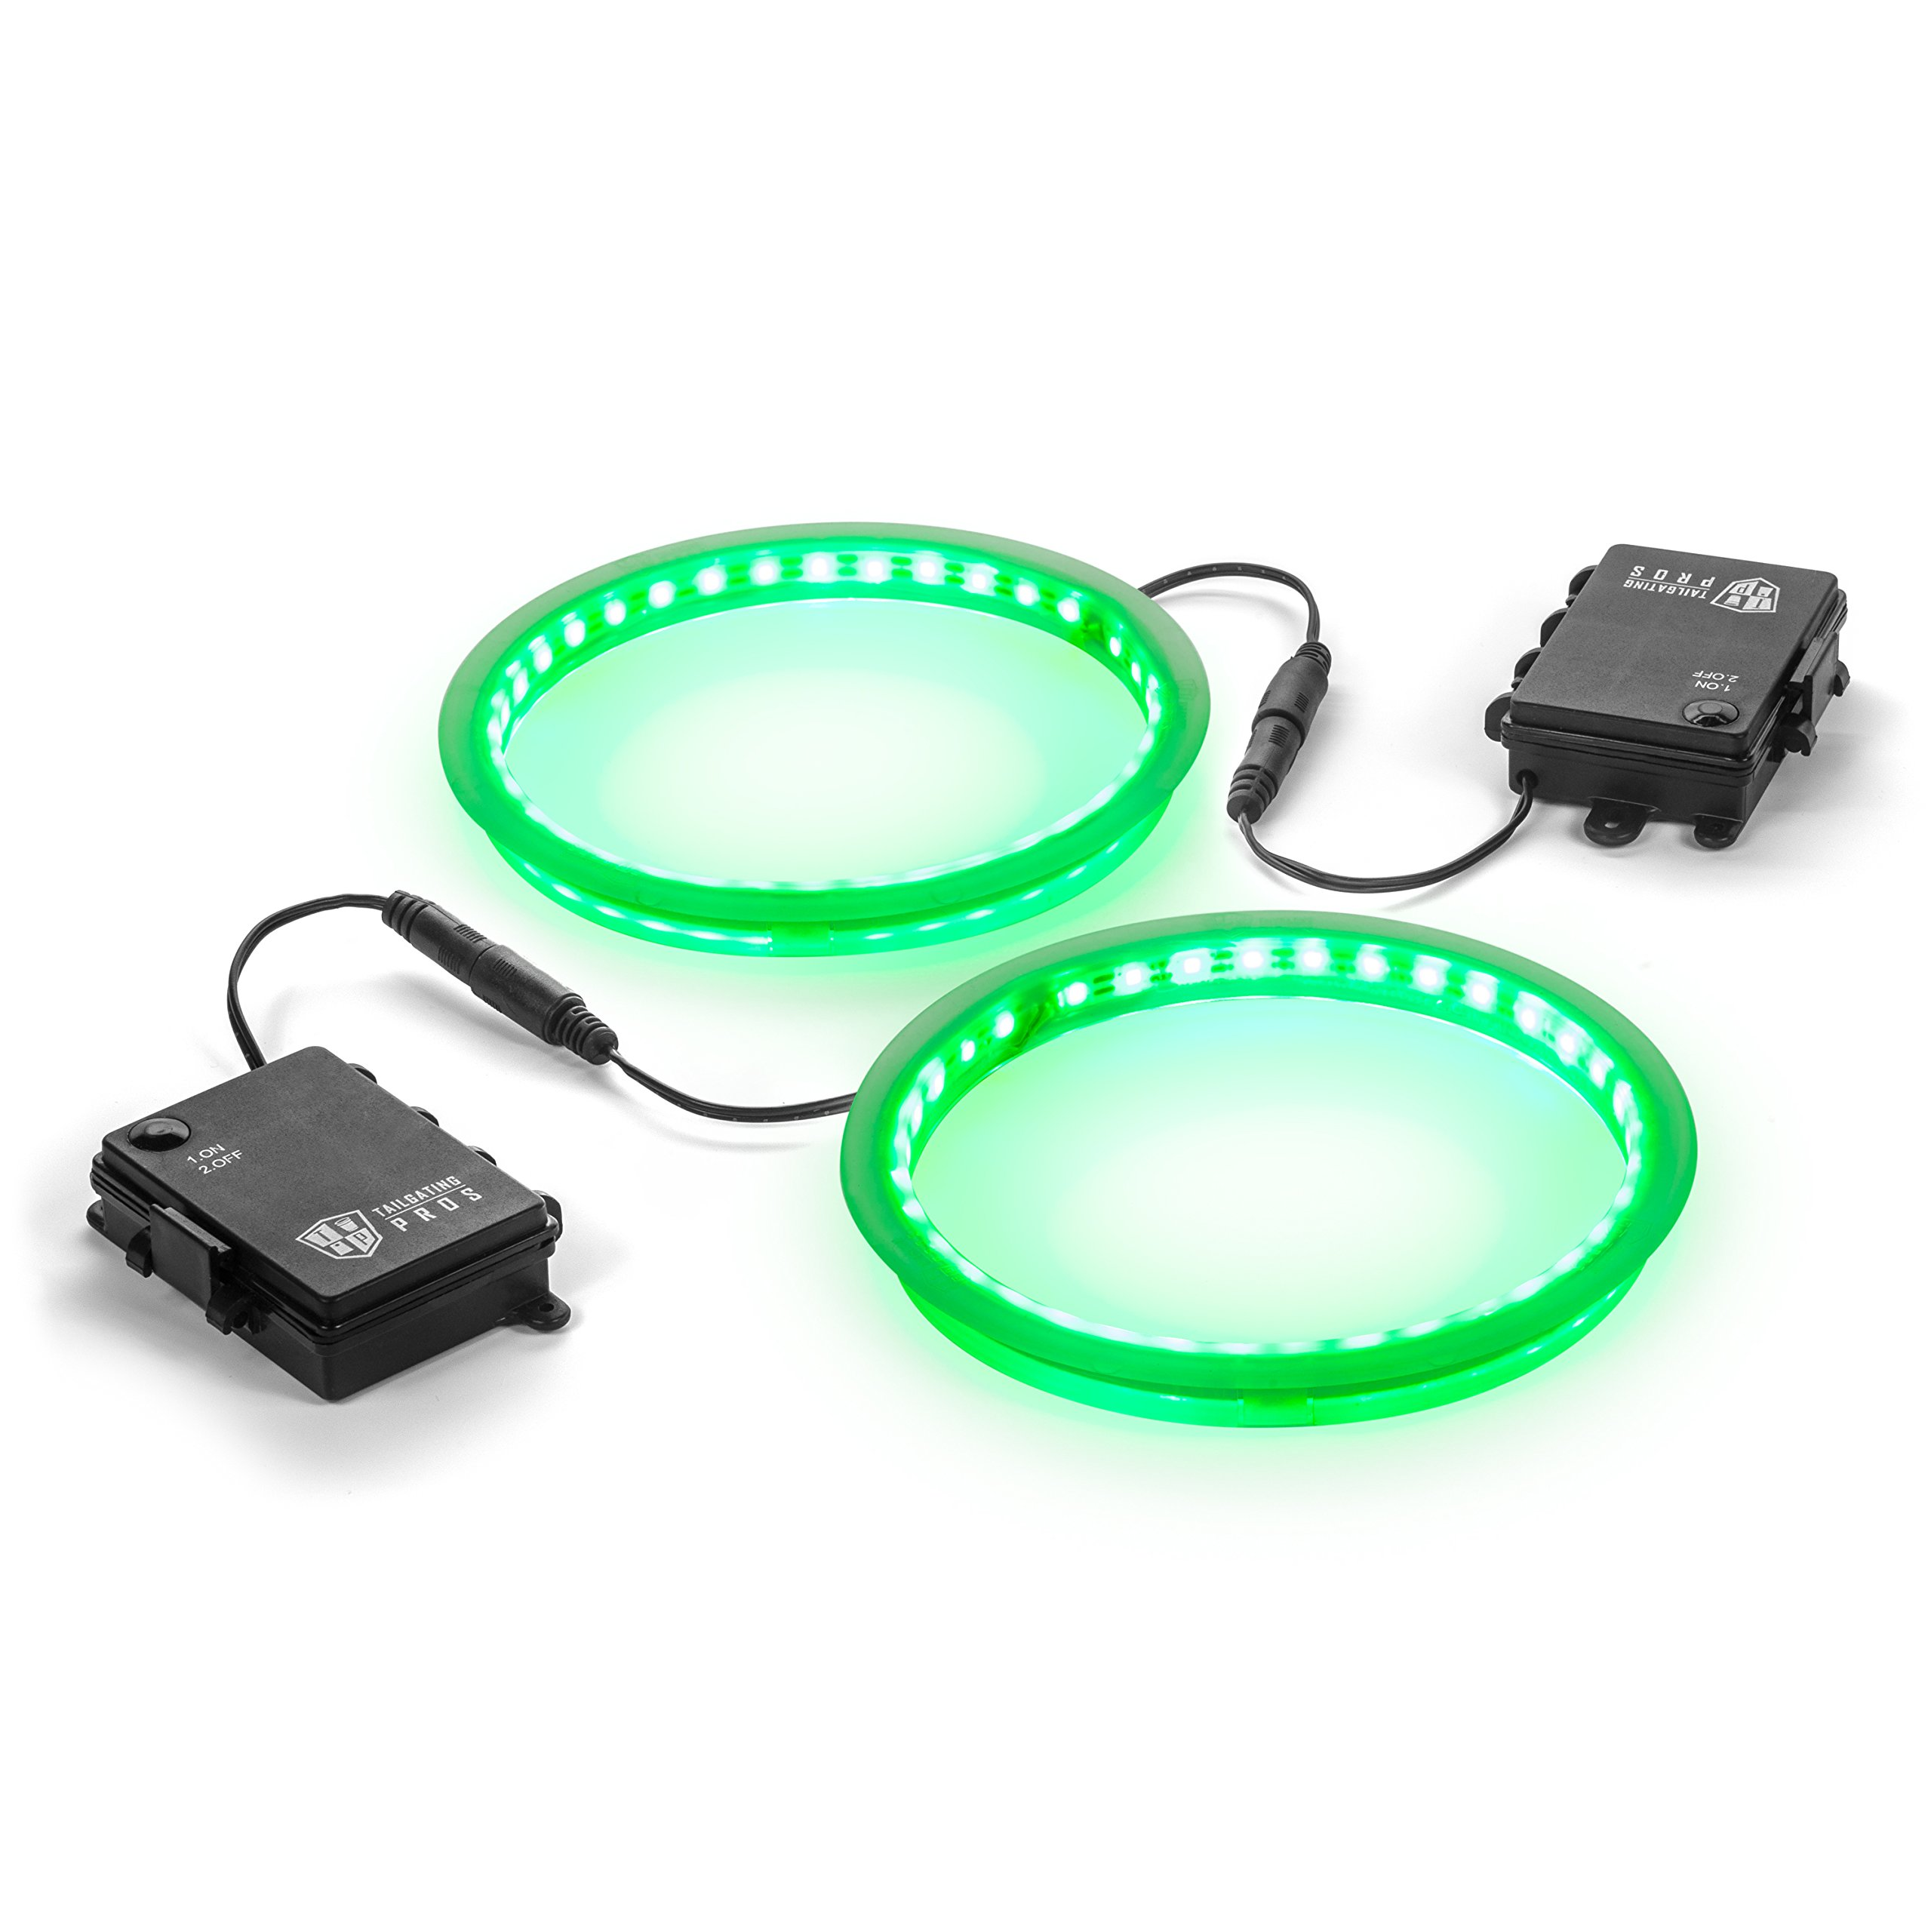 Tailgating Pros Premium 36 LED Cornhole Light Ring Set - 6 Color Options + Multicolored (Green)